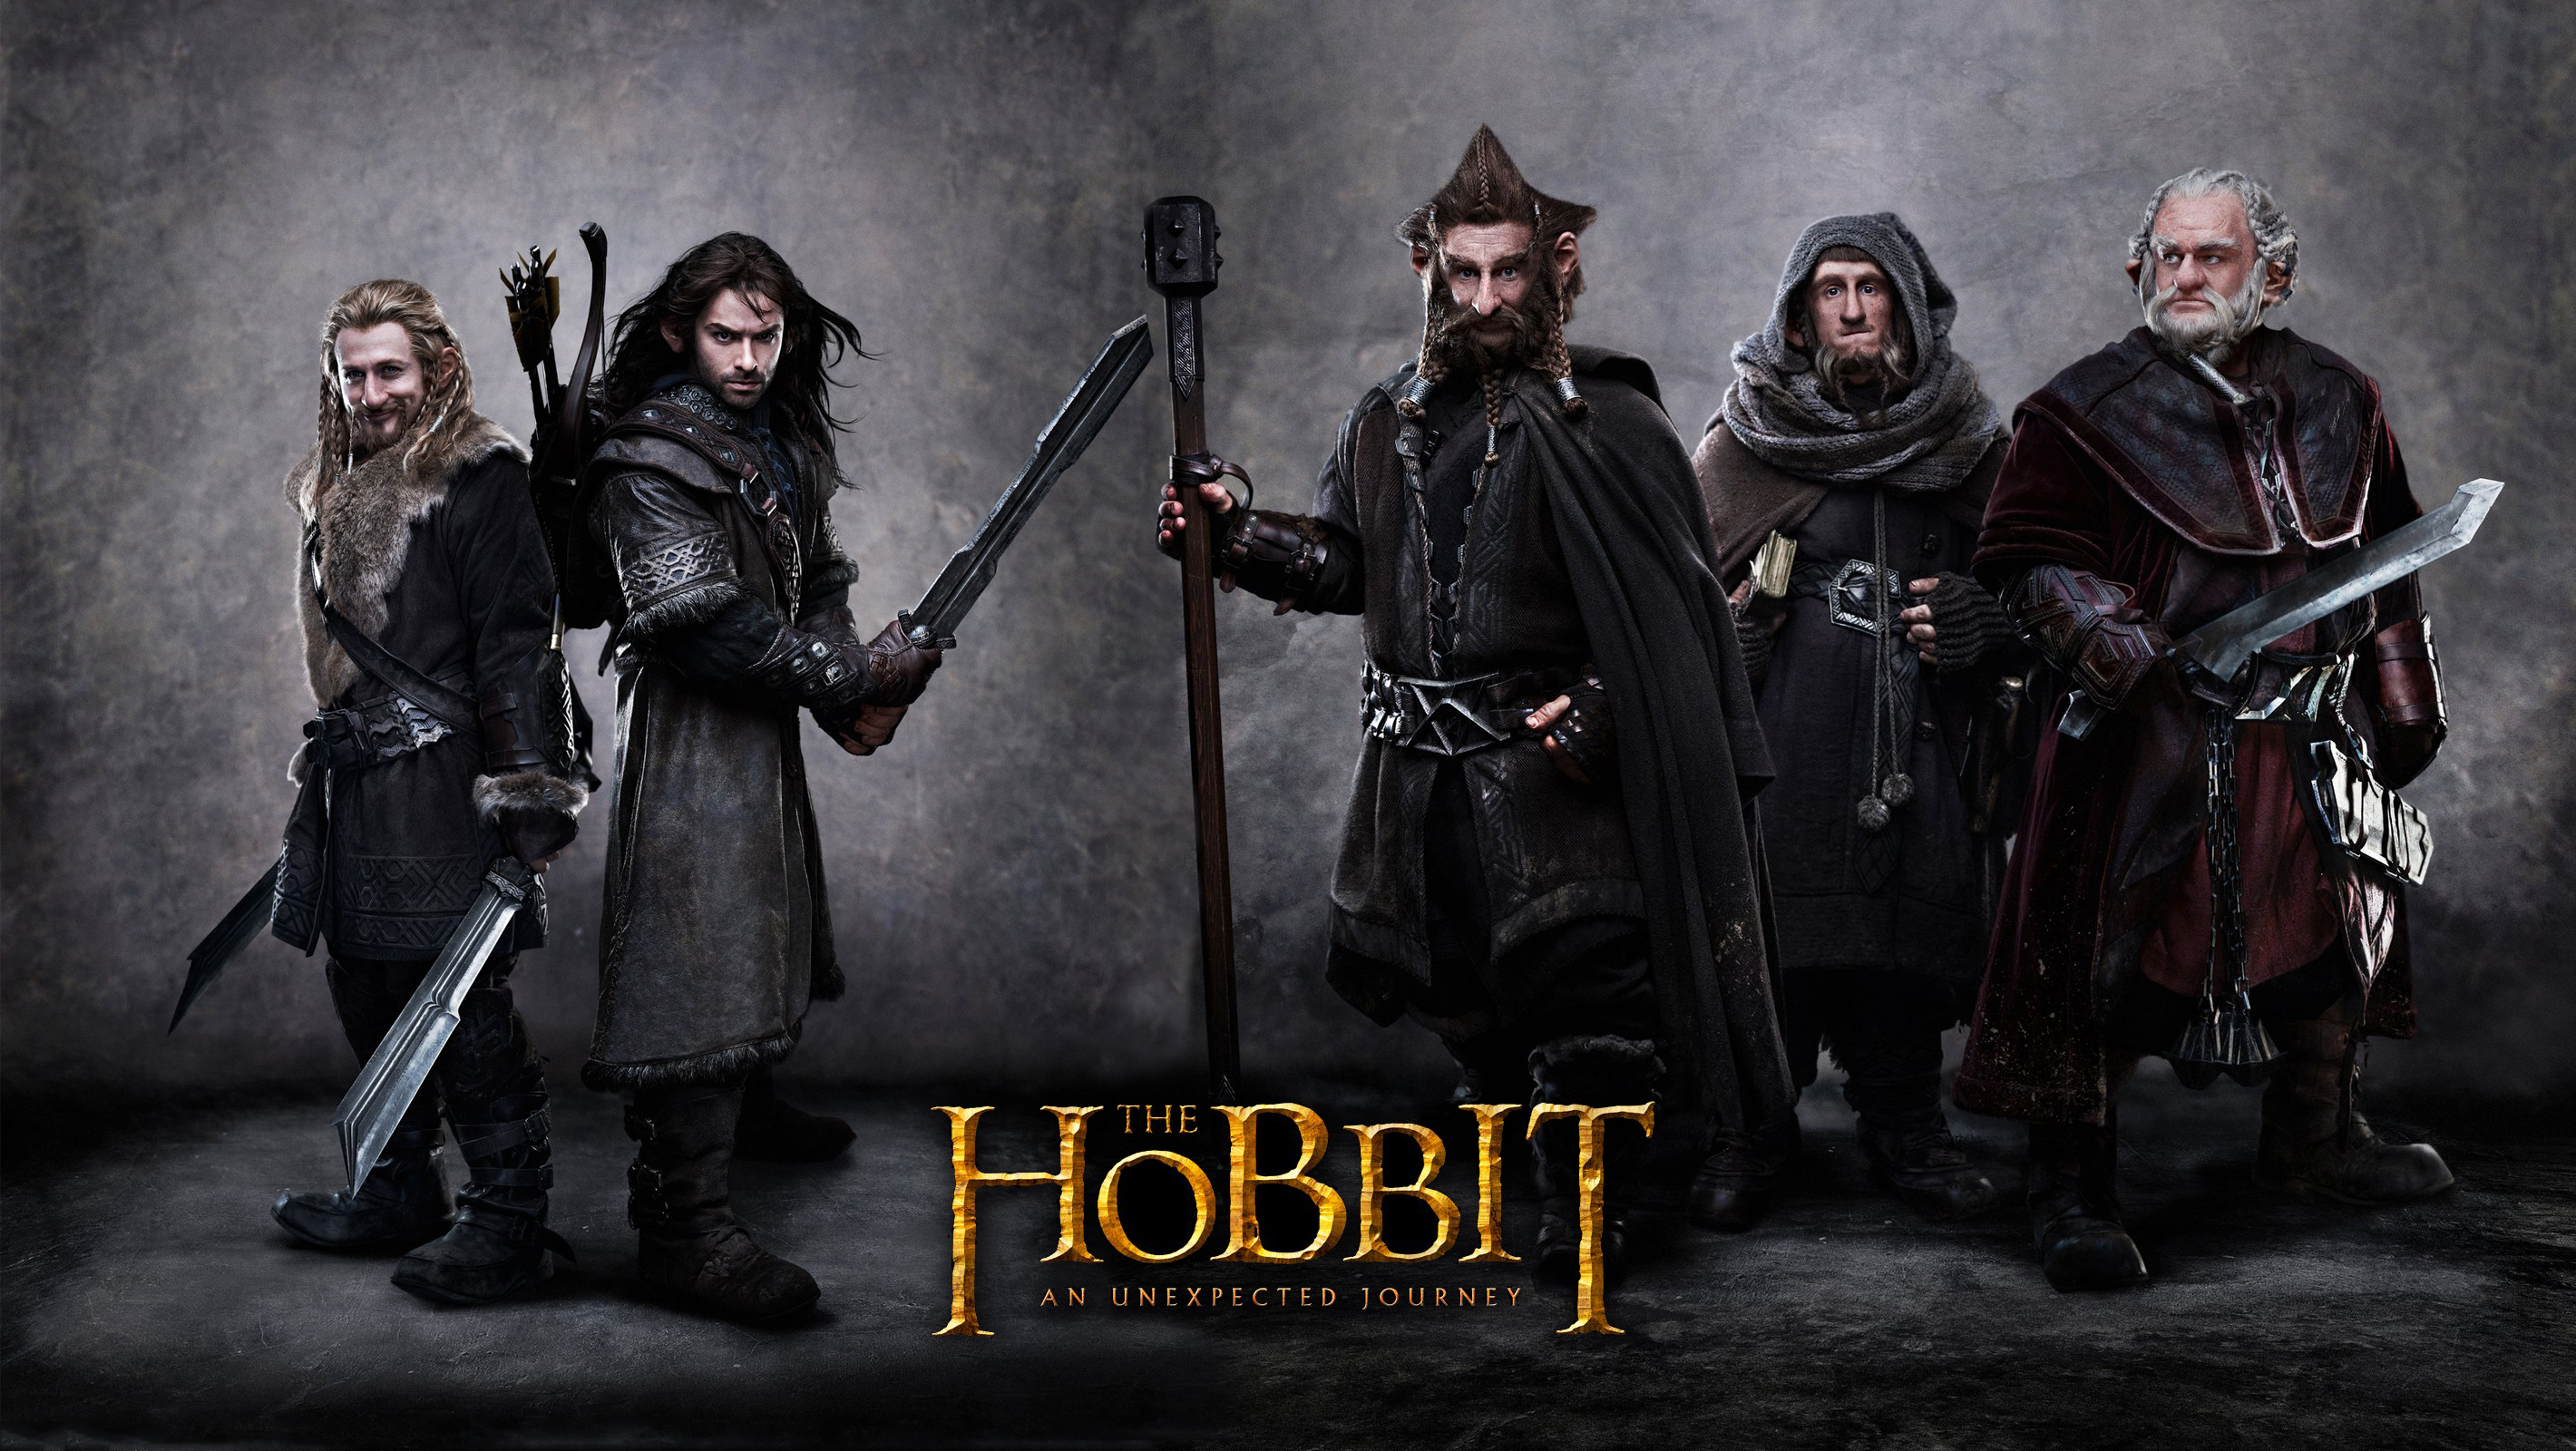 The Hobbit An Unexpected Journey Wallpapers HD Wallpapers 2840x1600